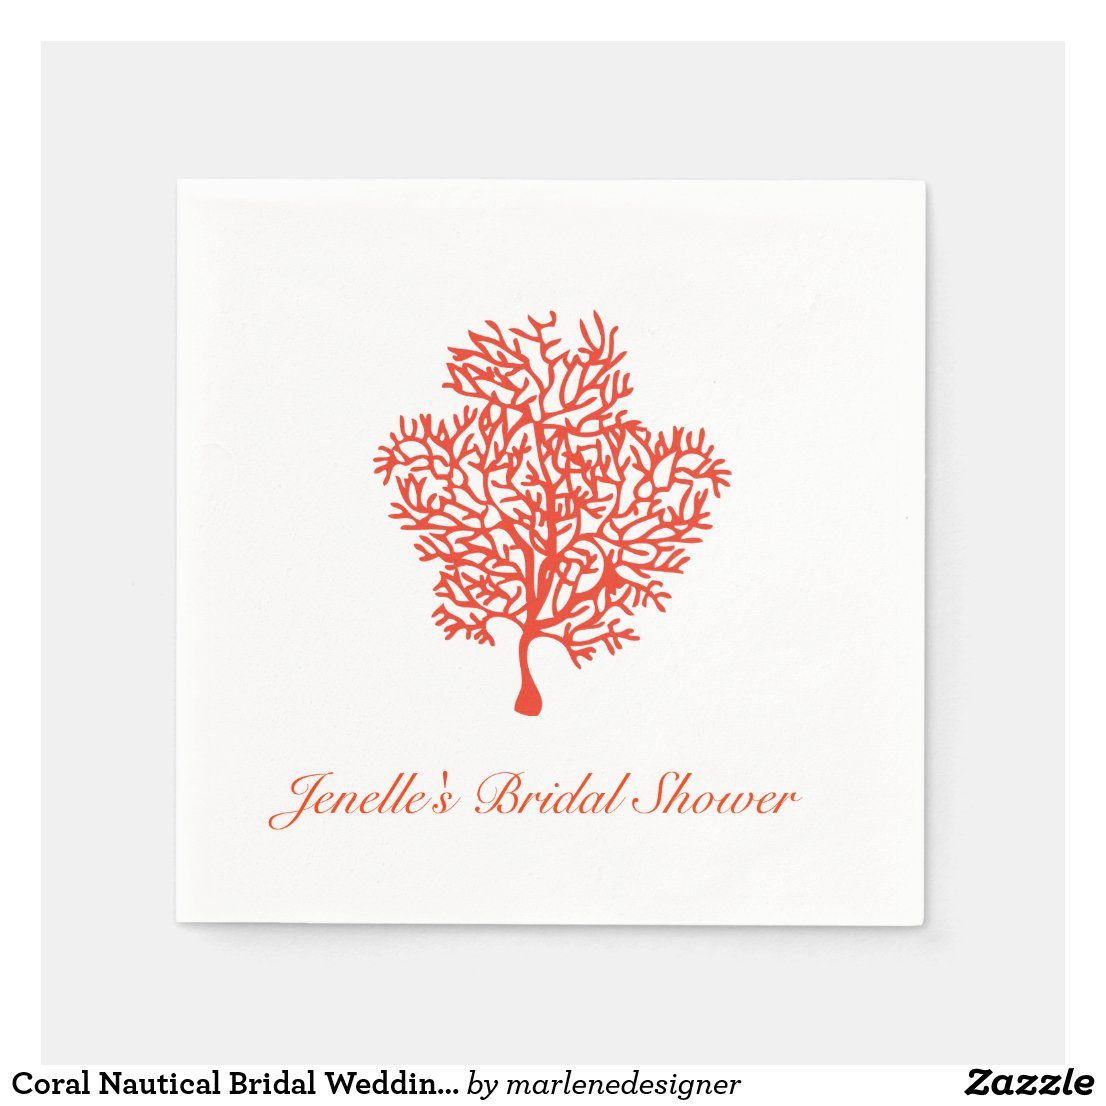 Coral Nautical Bridal Wedding Napkin